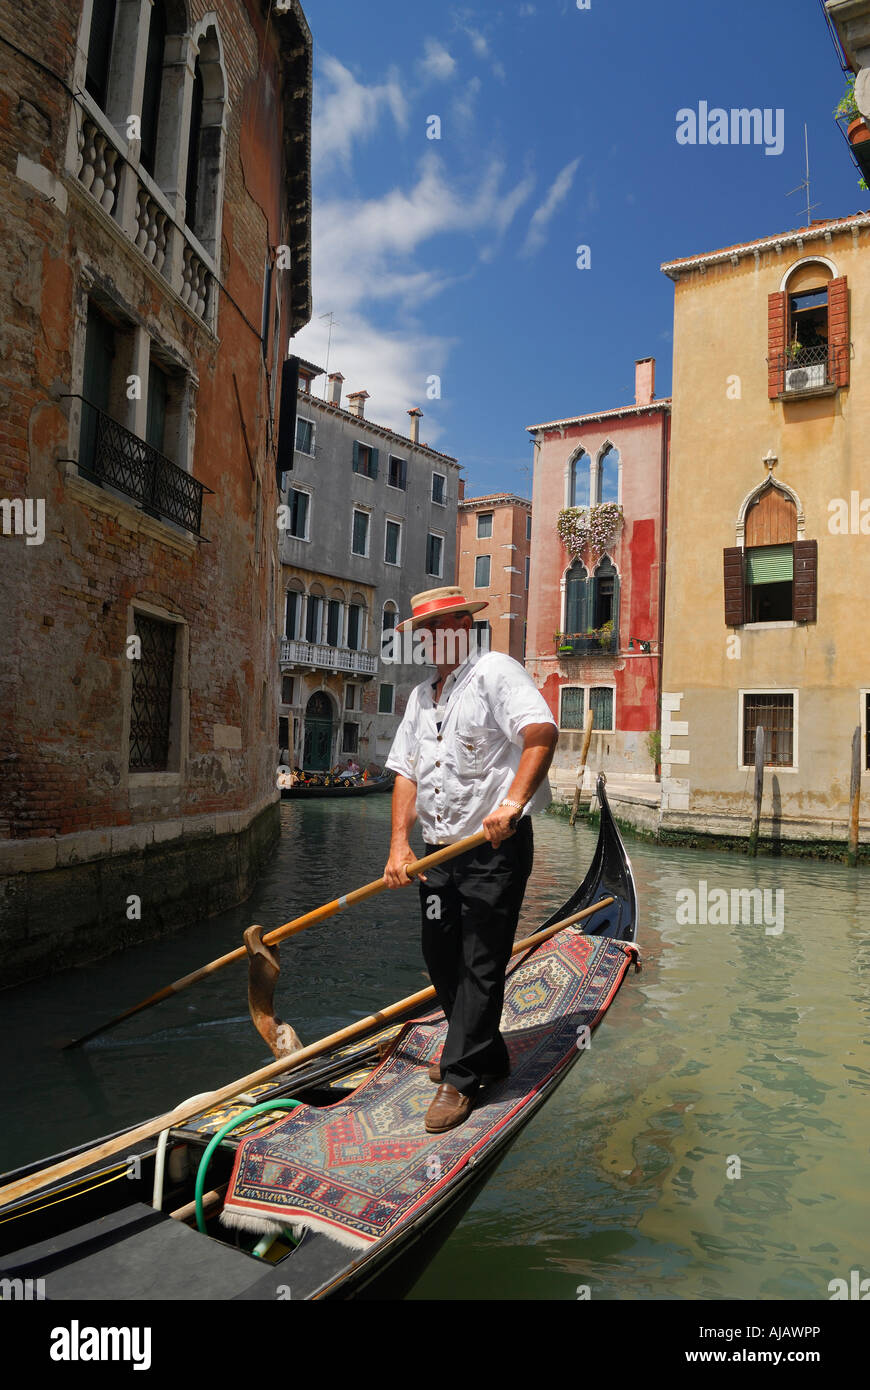 Gondolier plying his trade on a canal in Venice - Stock Image